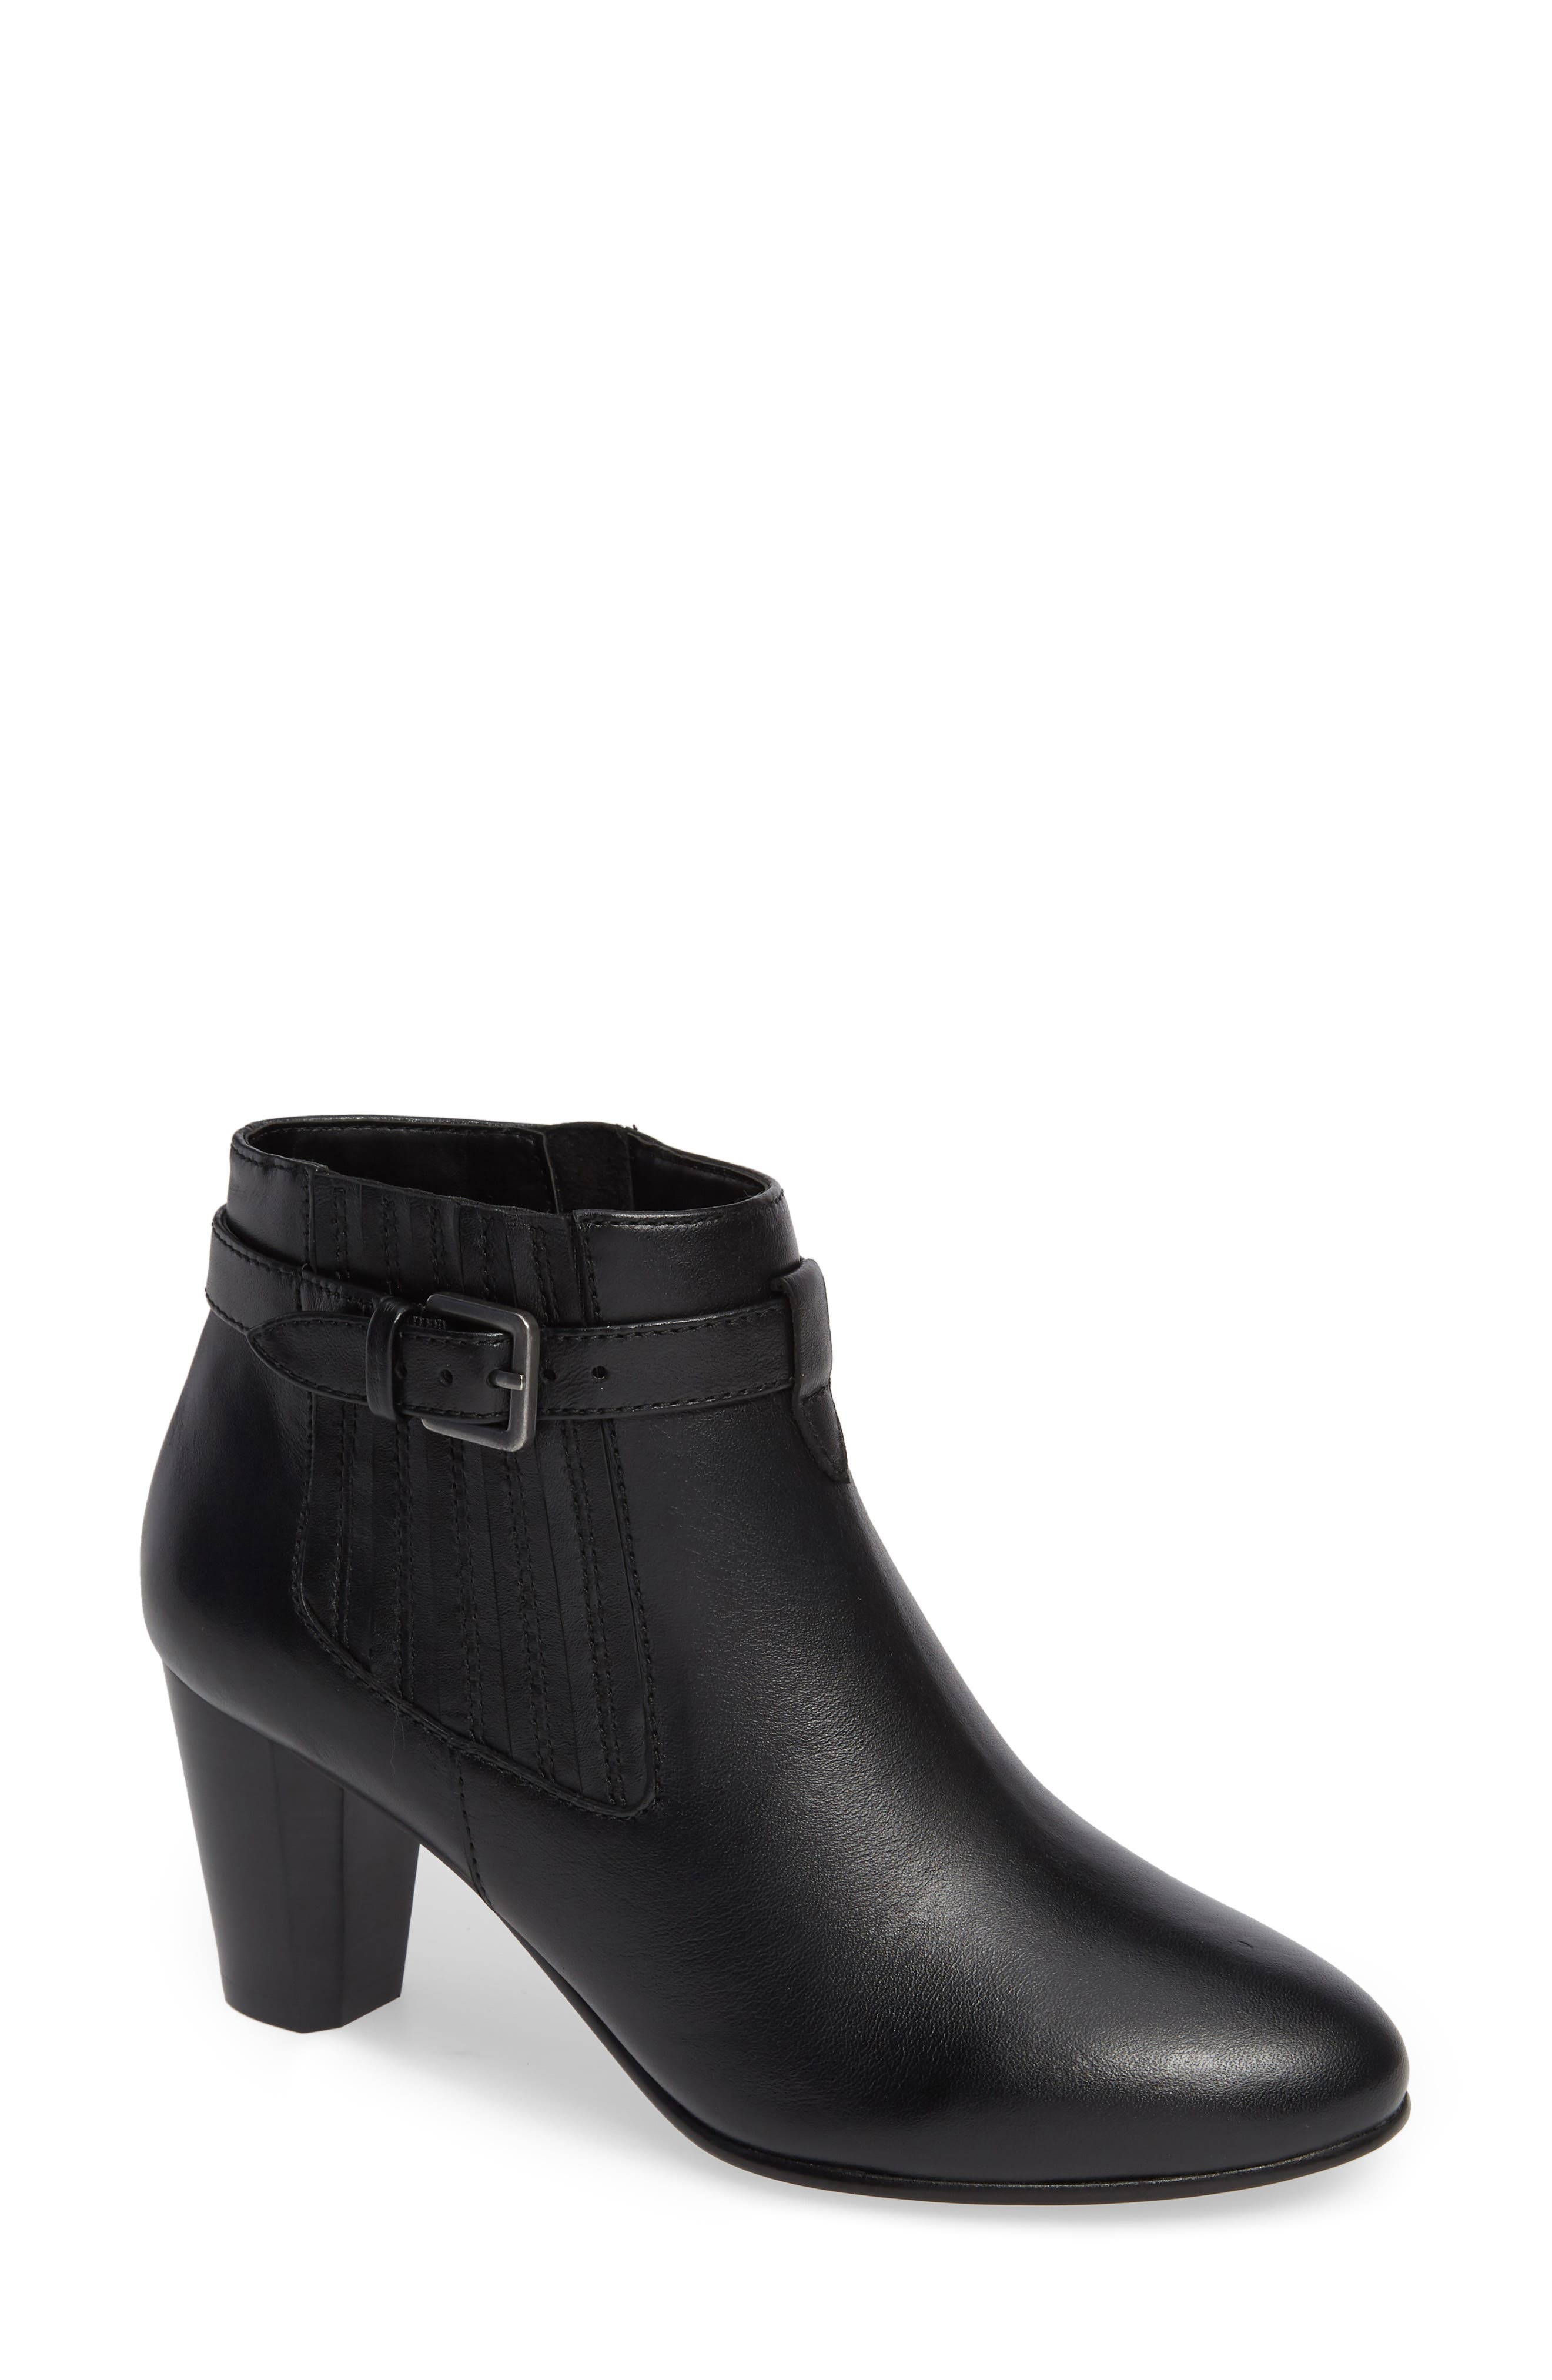 David Tate Opal Bootie, WW - Black